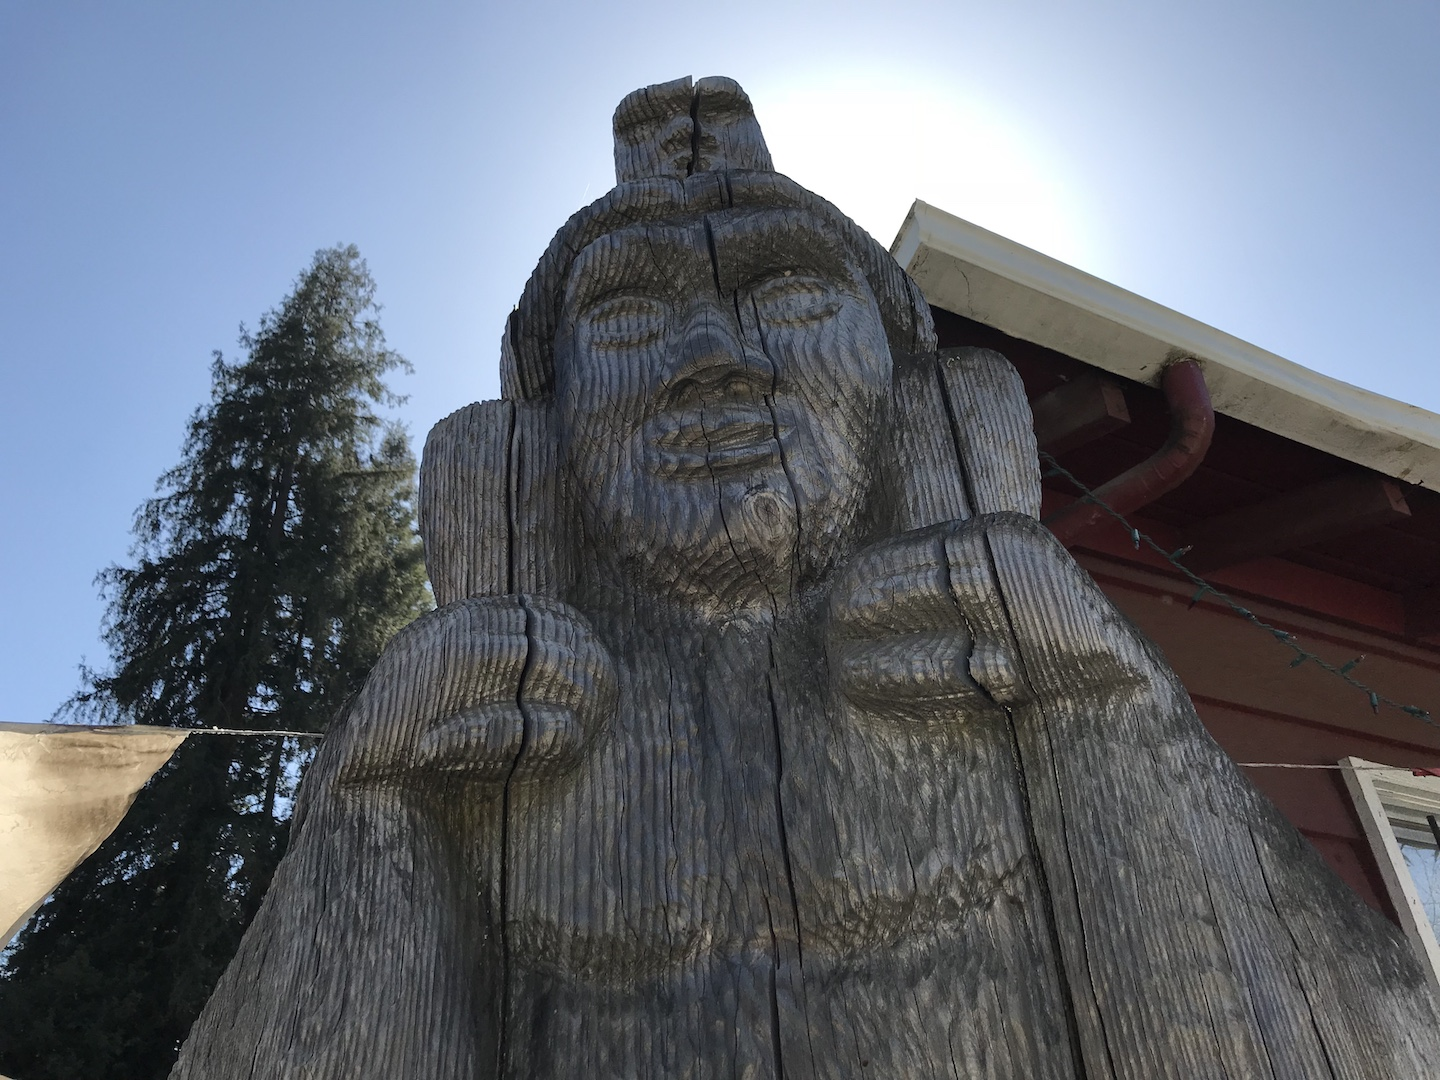 The Bigfoot Discovery Project on Highway 9 in Felton is legendary.